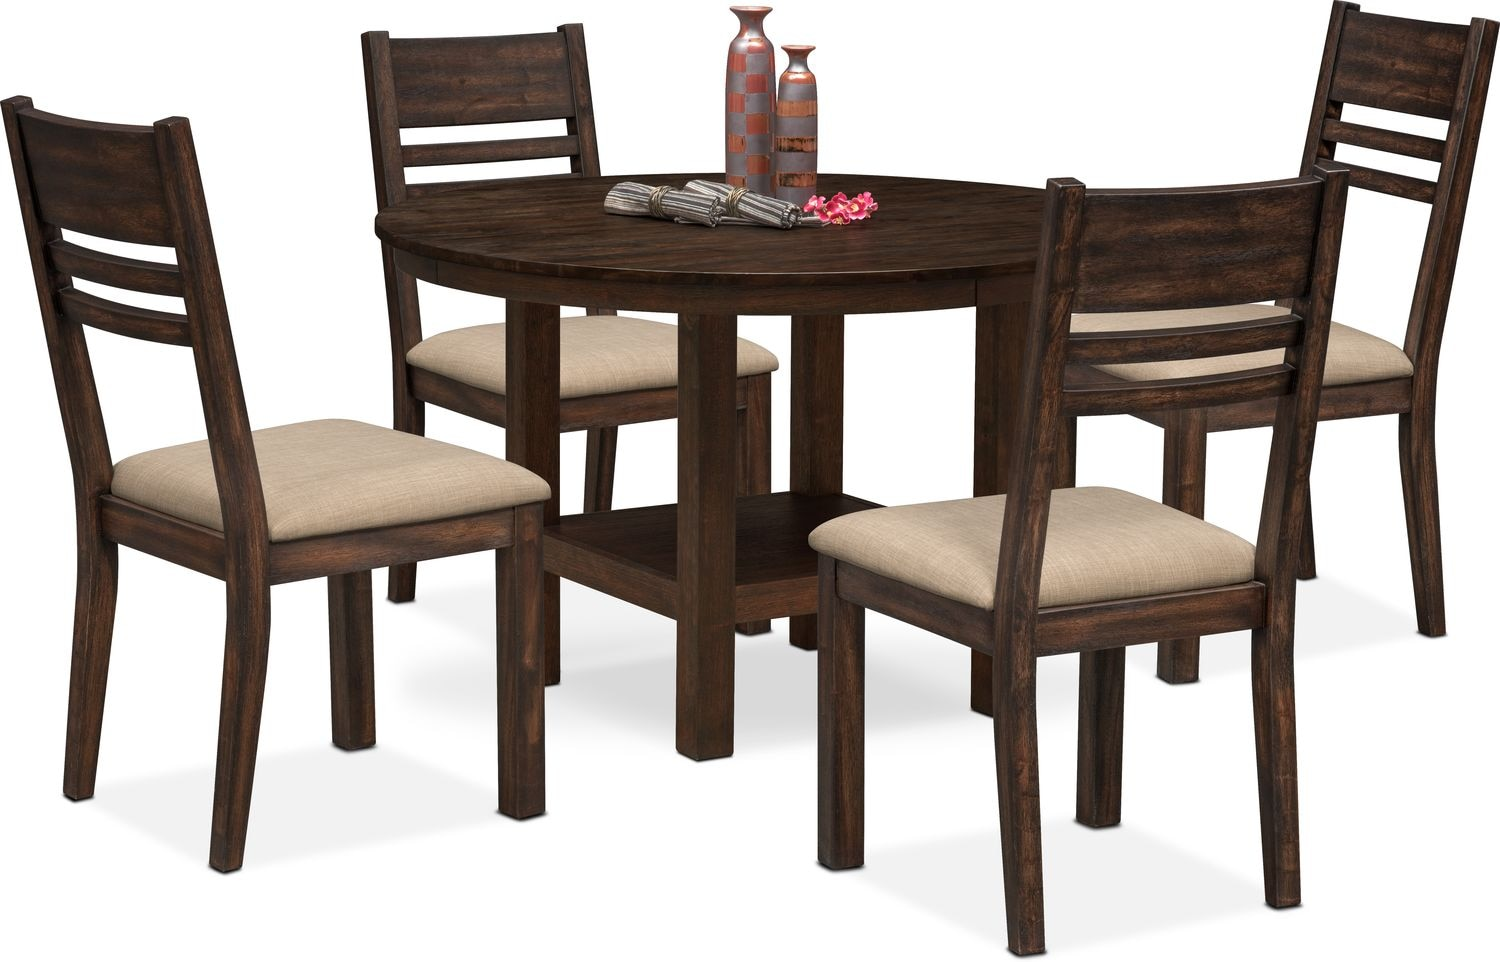 Tribeca Round Dining Table And 4 Side Chairs   Tobacco